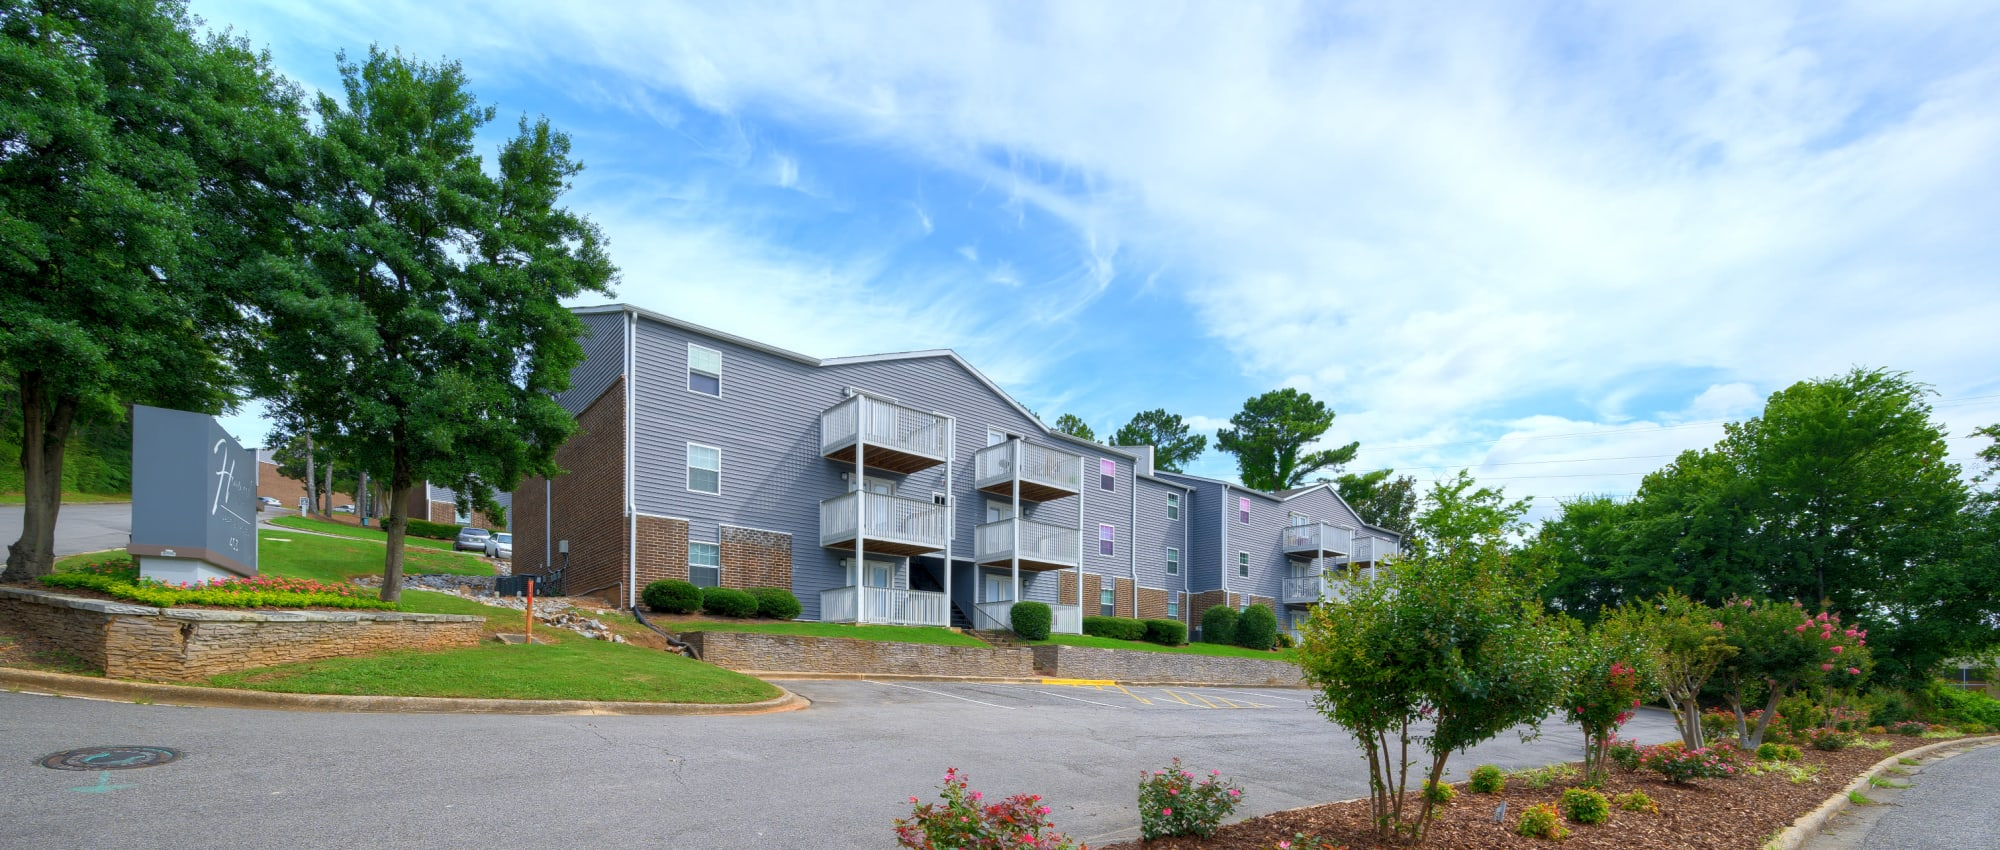 Homewood Heights apartments in Birmingham, Alabama